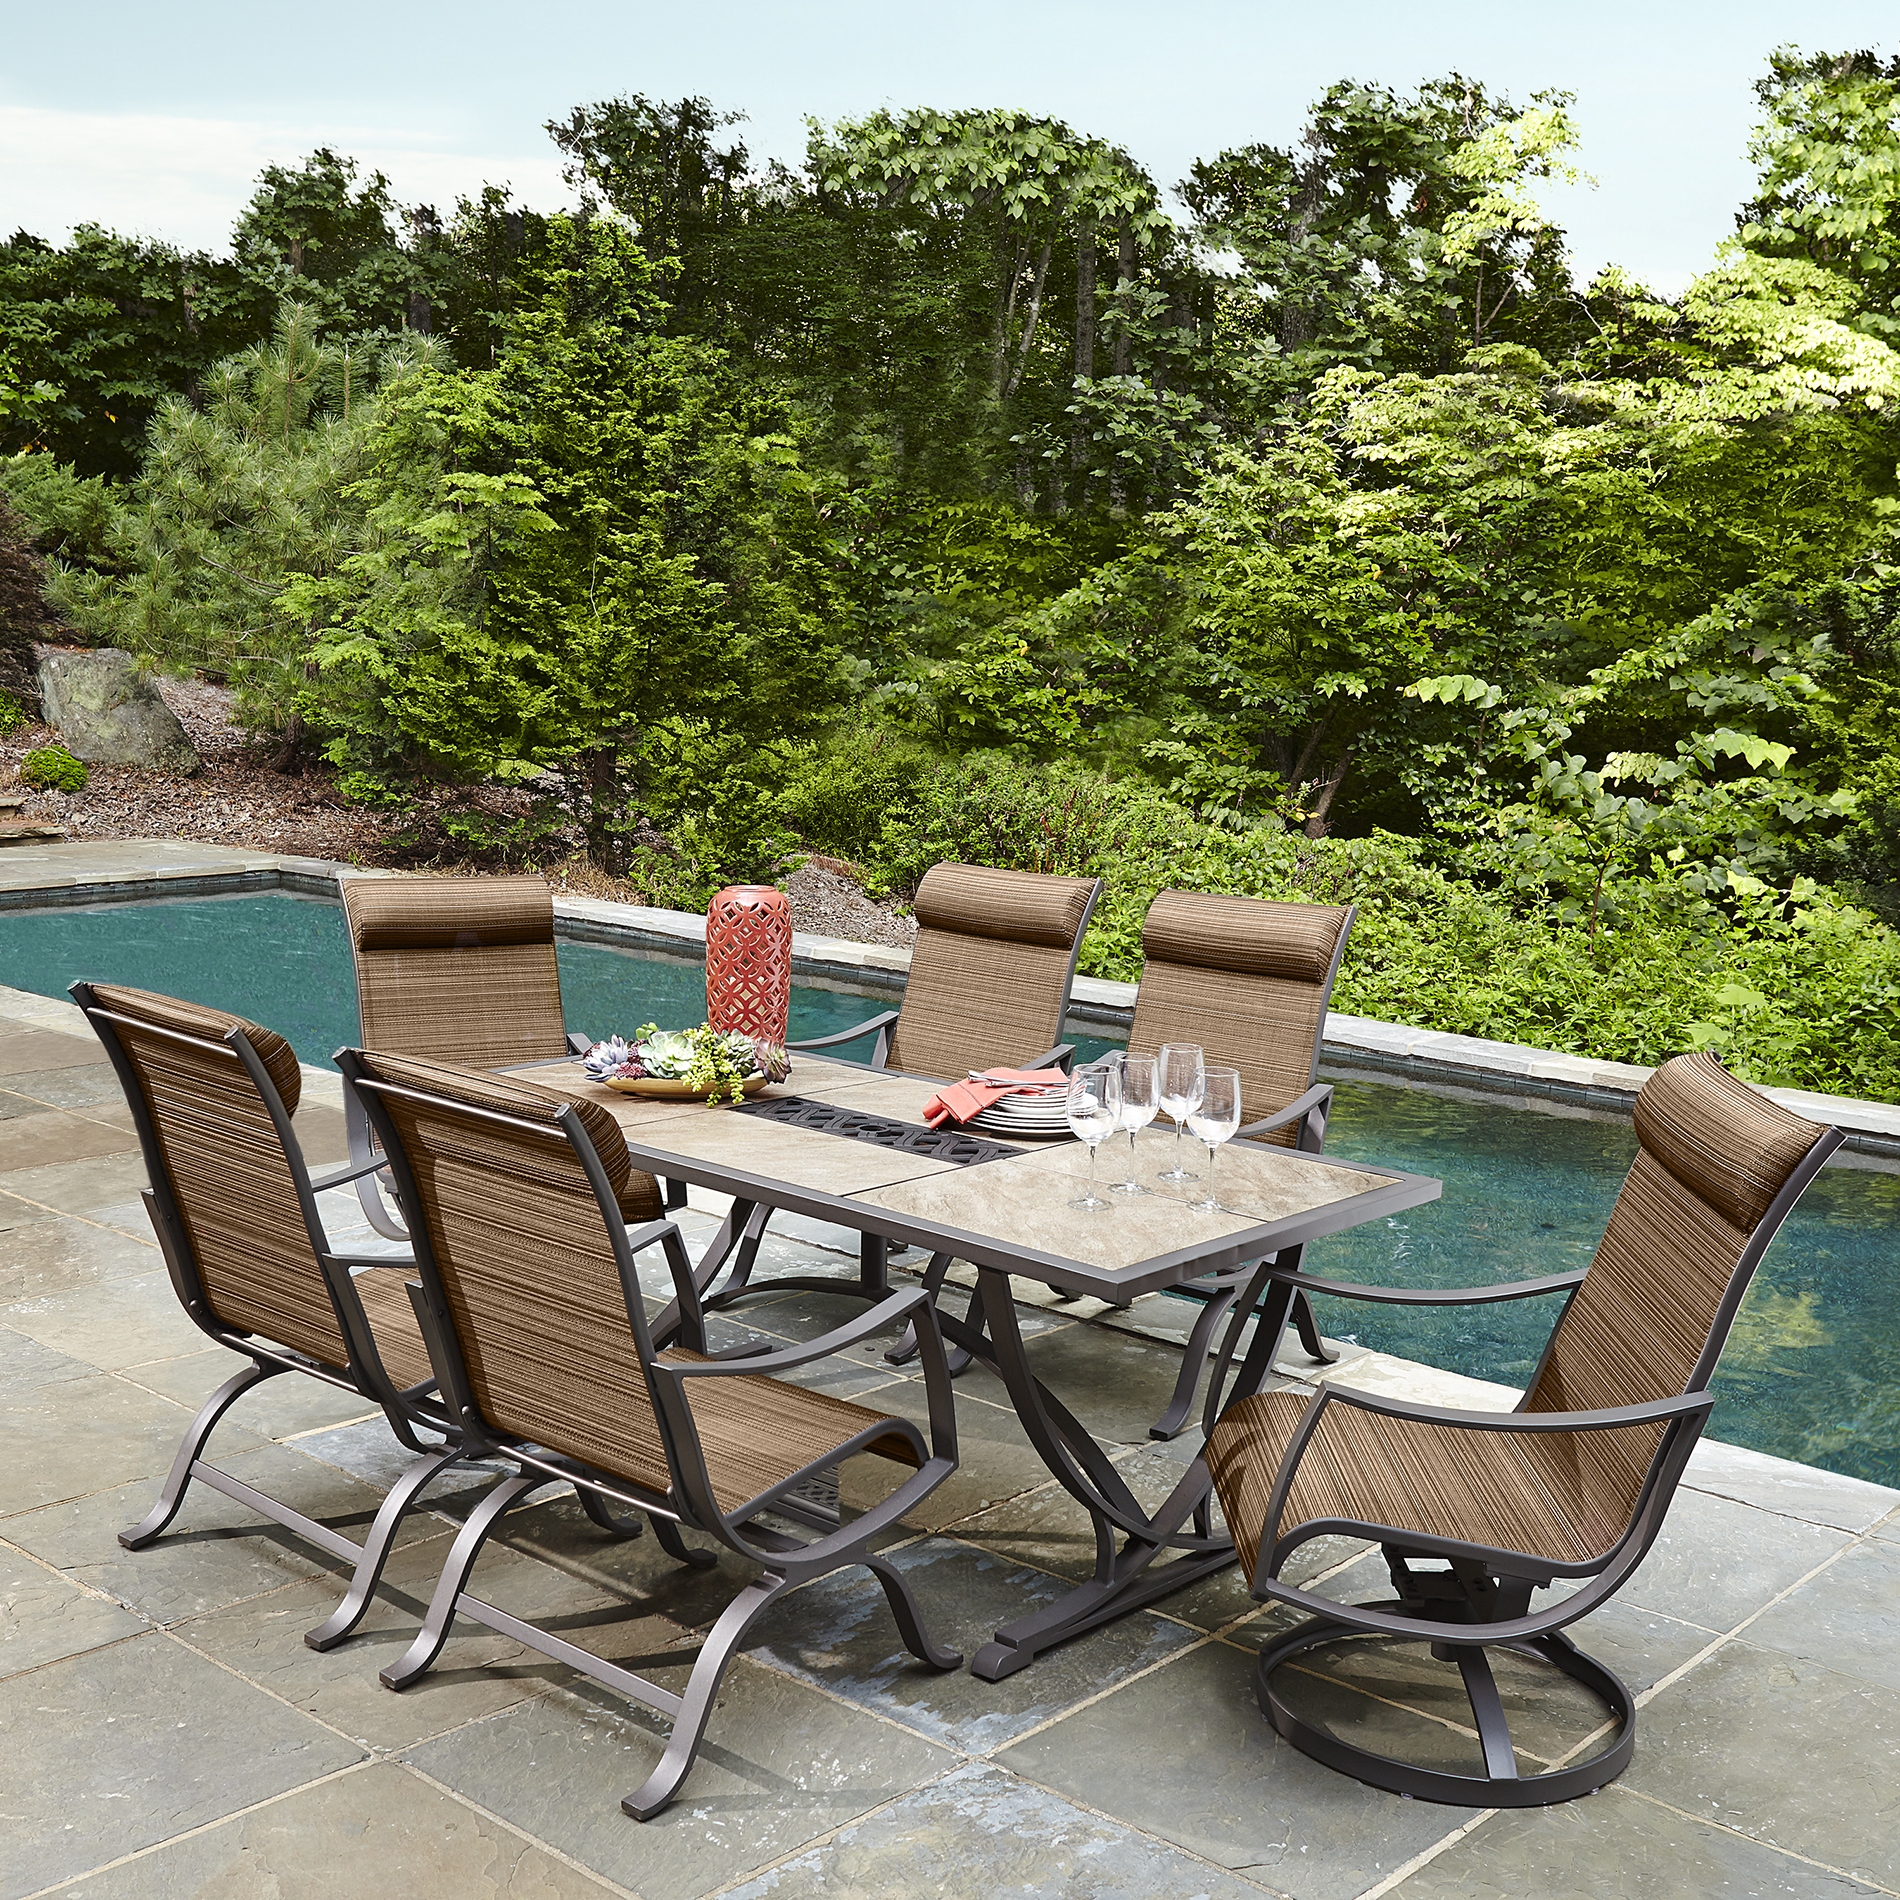 outdoor dining sets ty pennington style palmetto 7 piece patio dining set - sears CBCPZDY